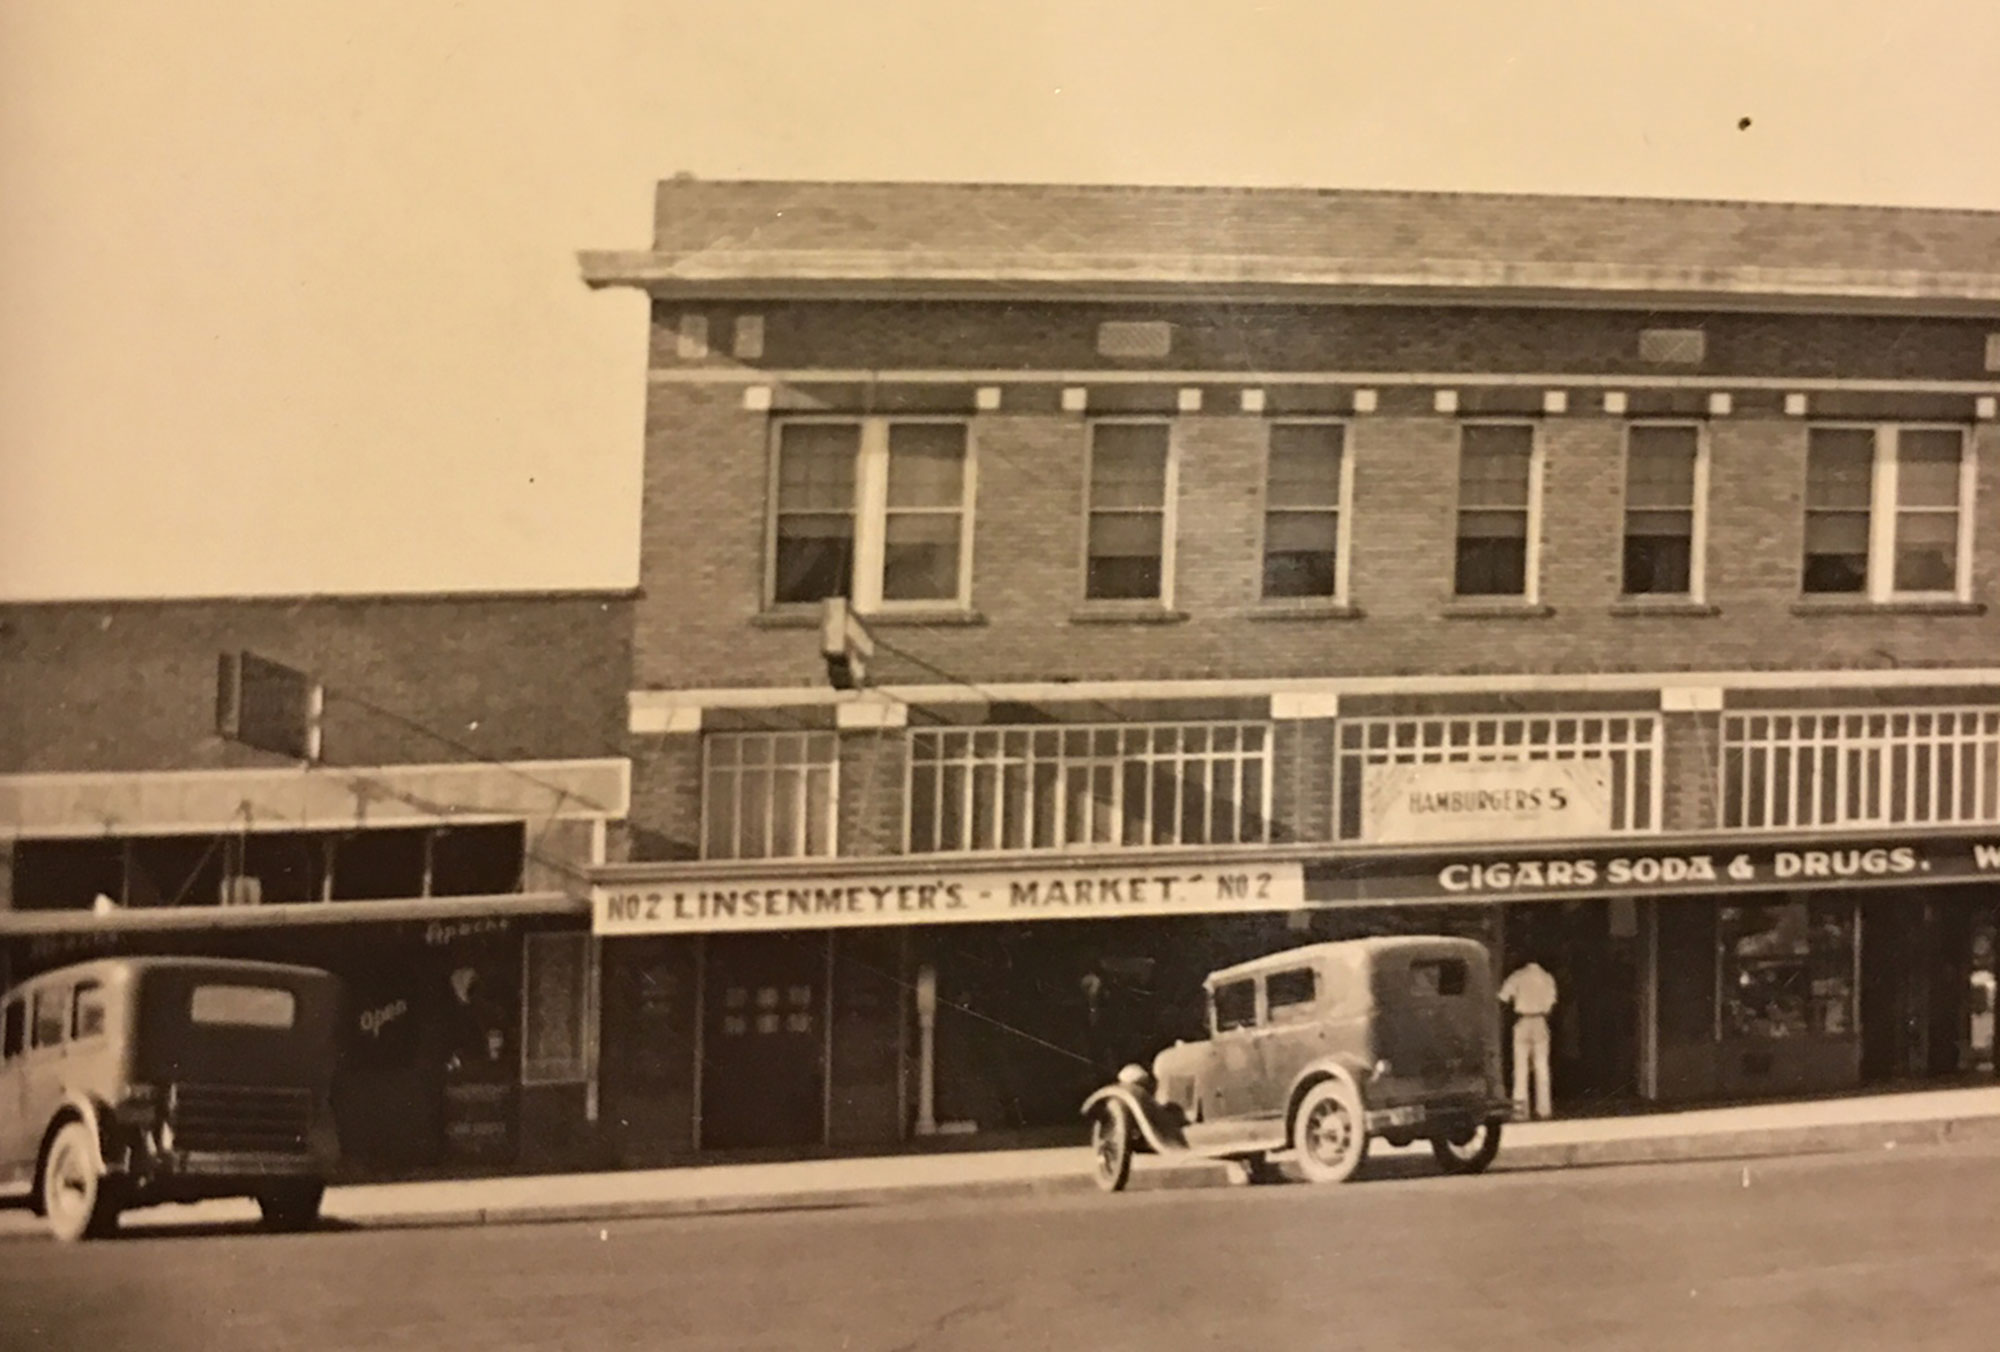 Linsenmeyer Market No. 2 at 27 S. Second St in Phoenix, 1930s; Photo courtesy William Linsenmeyer